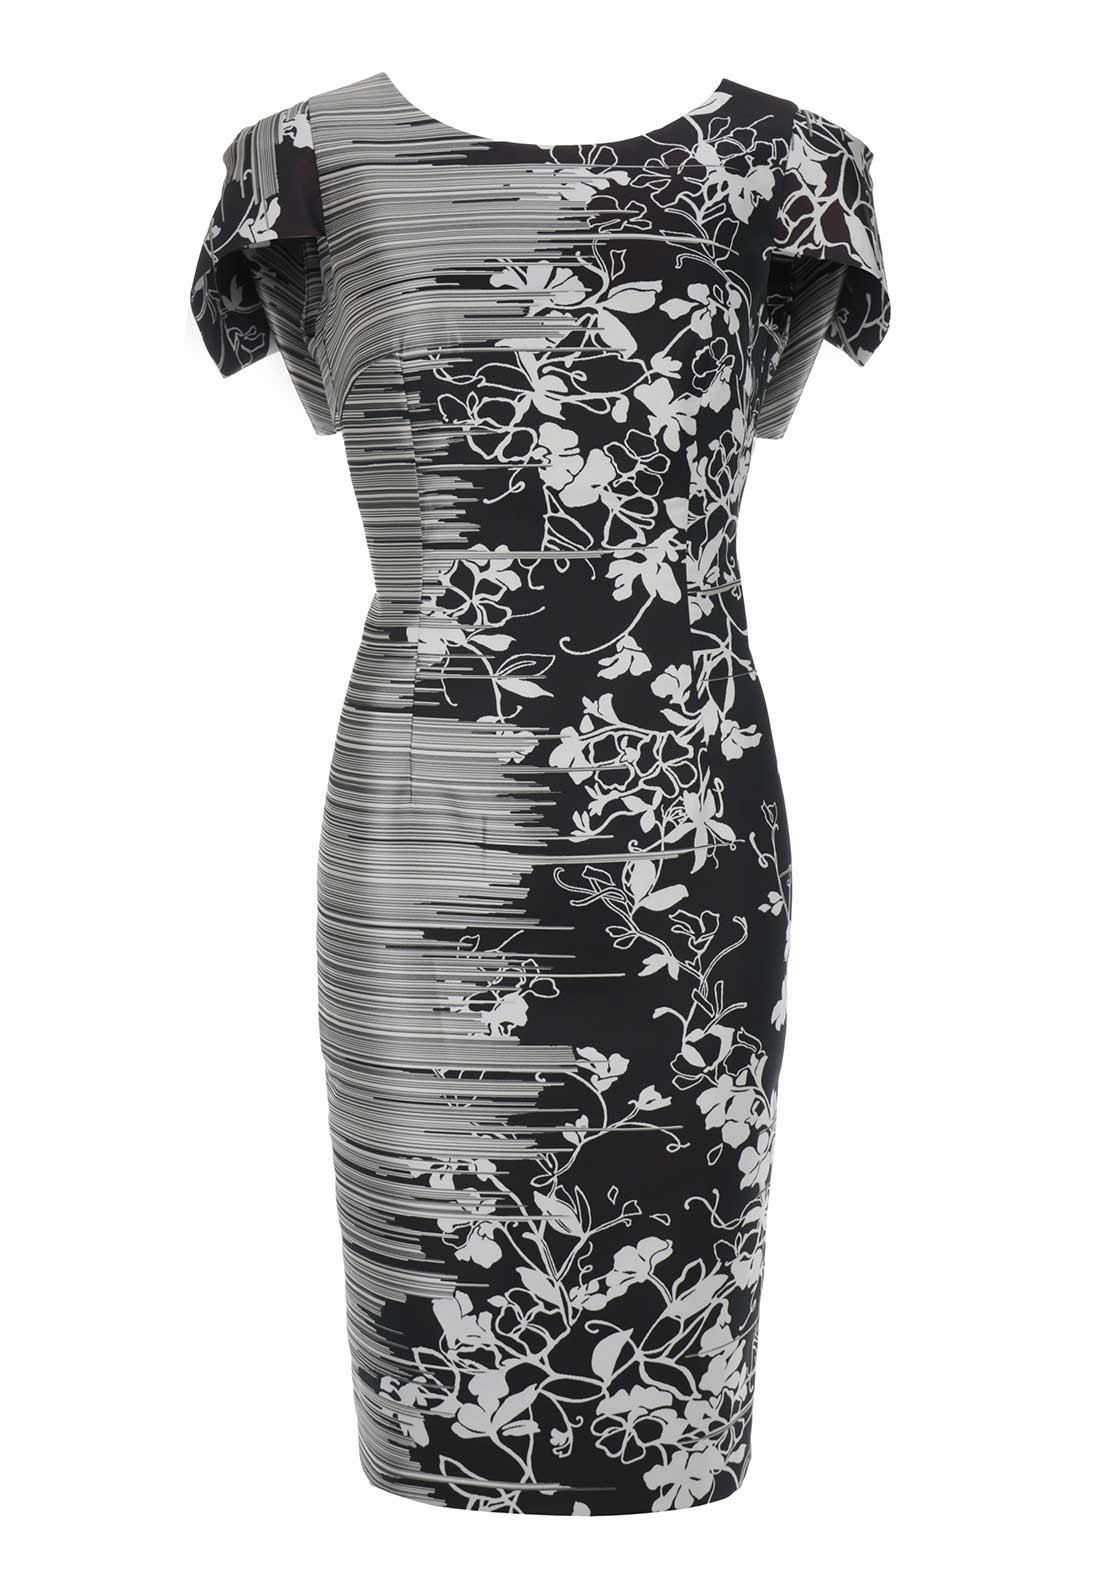 Moskada Floral Print Cap Sleeve Shift Dress, Black and White